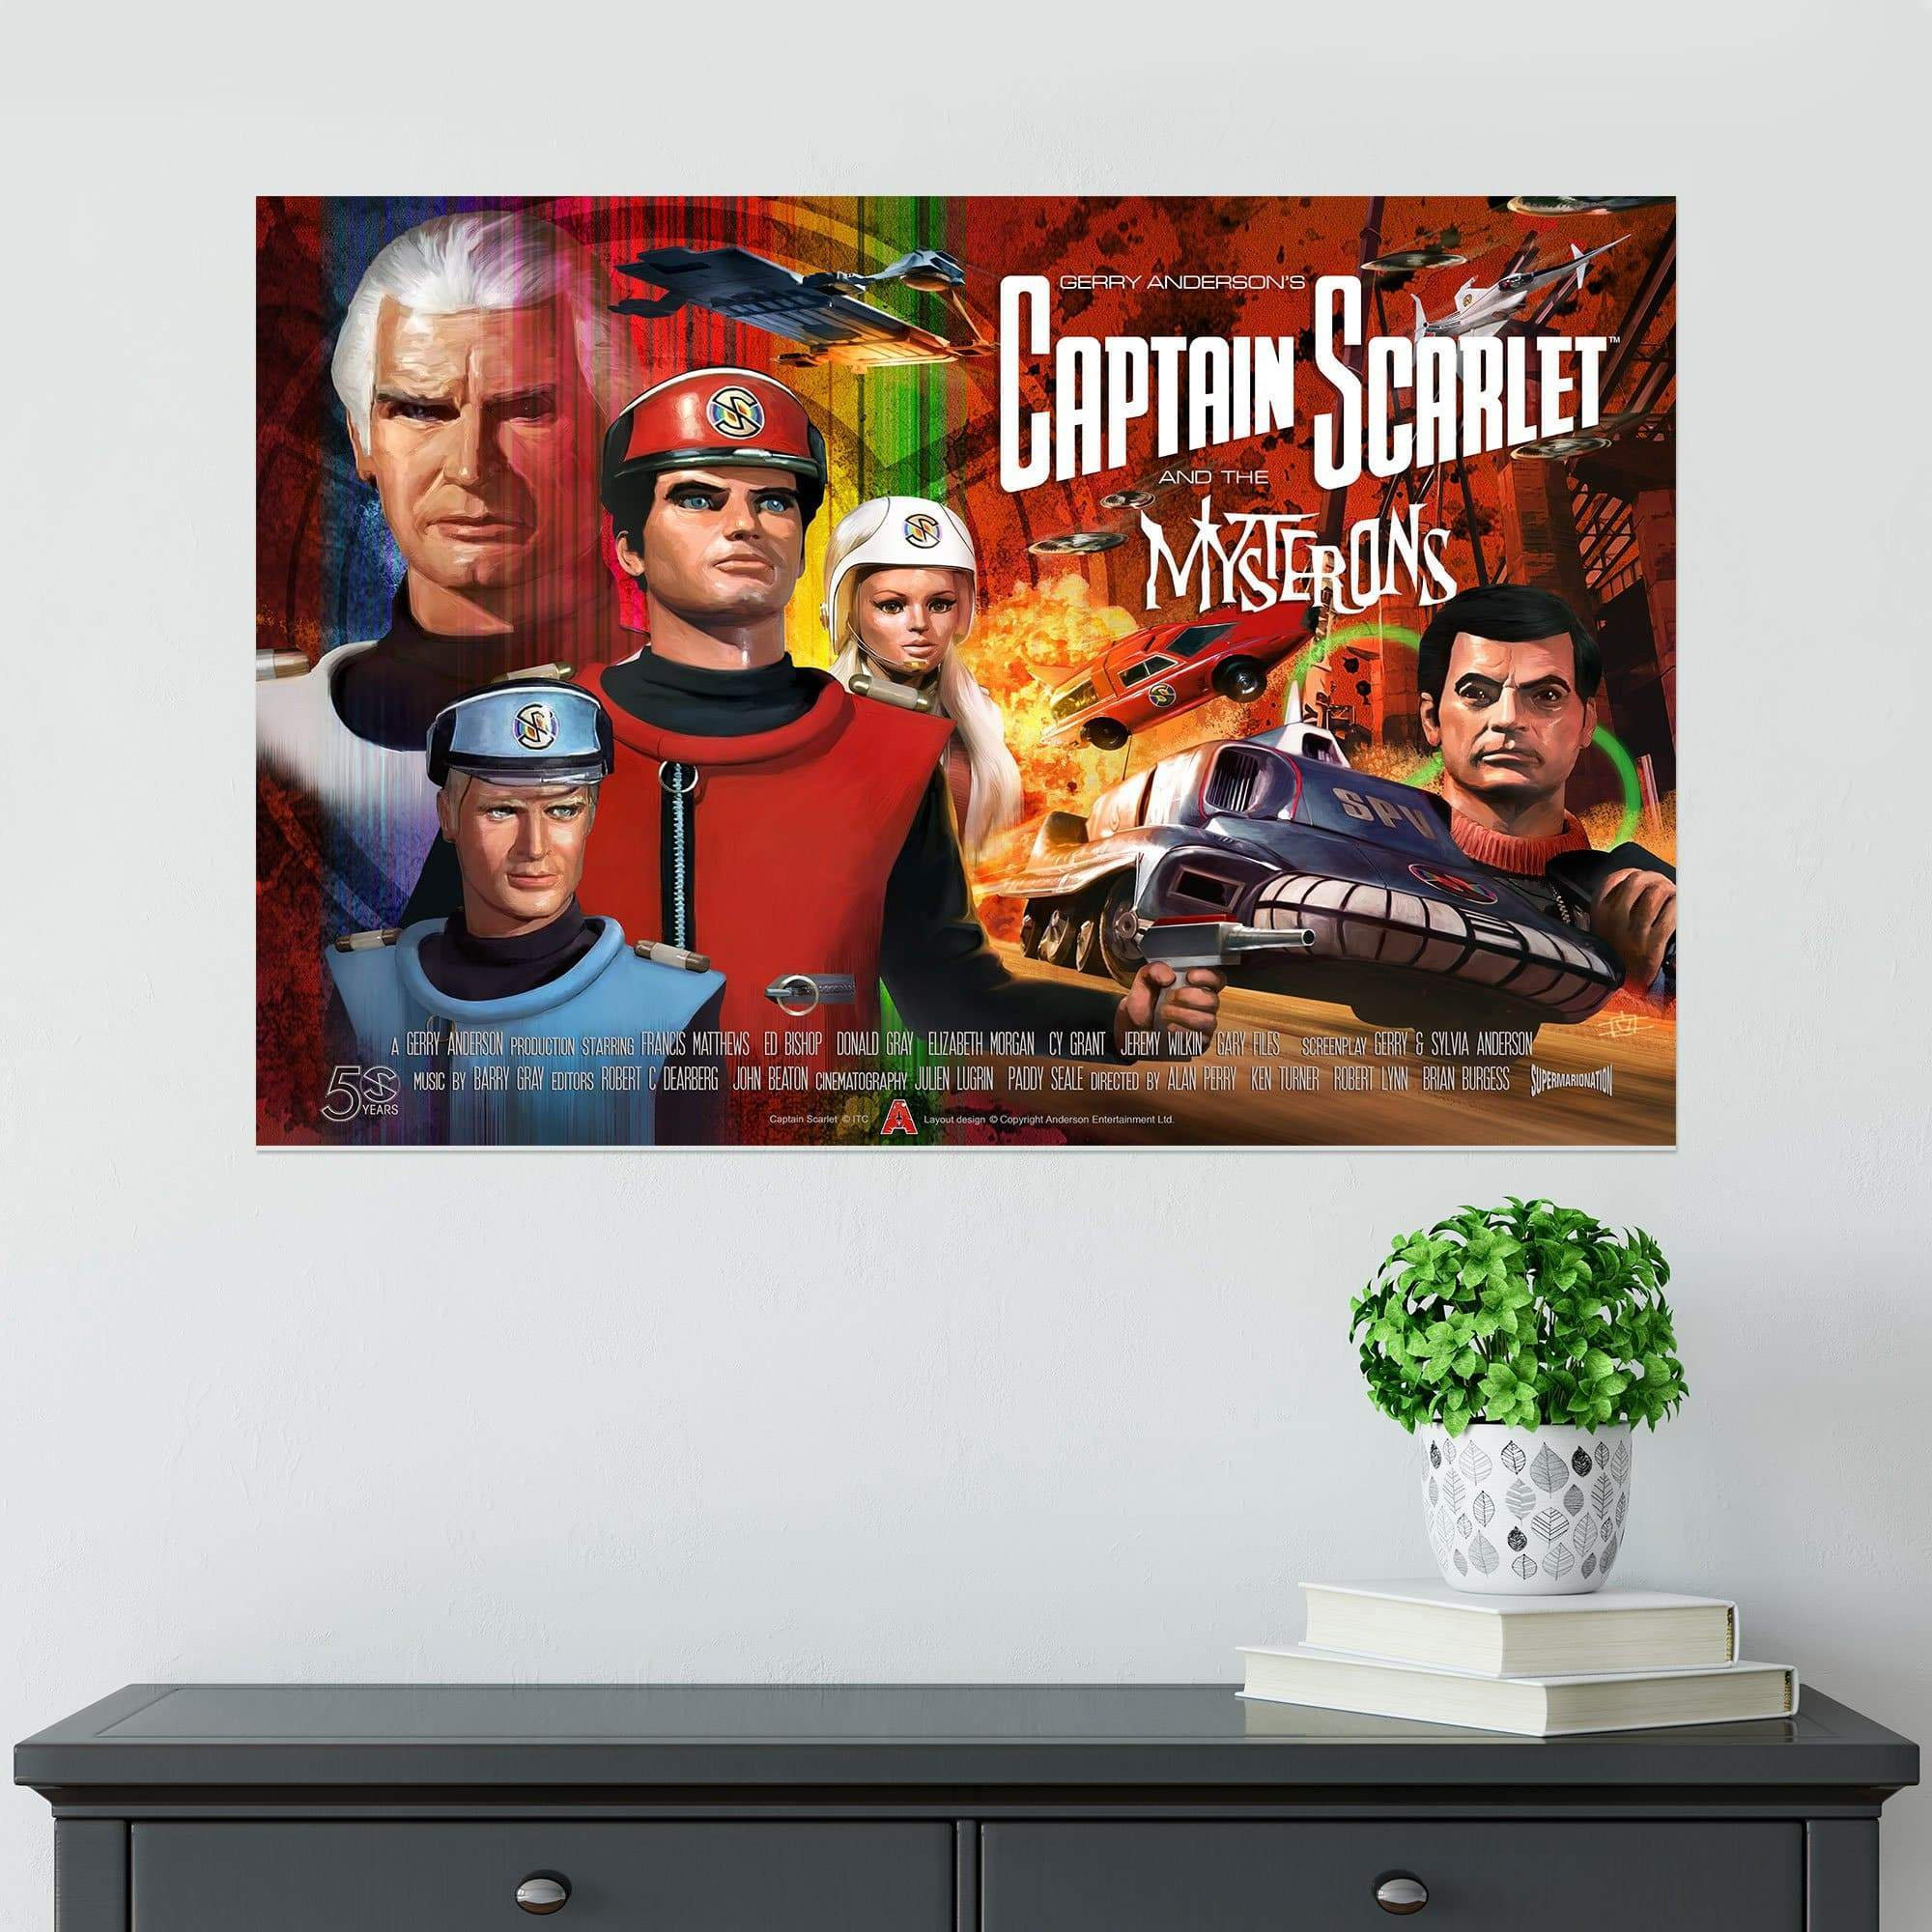 Official Captain Scarlet 50th Anniversary Poster [Official & Exclusive] - The Gerry Anderson Store